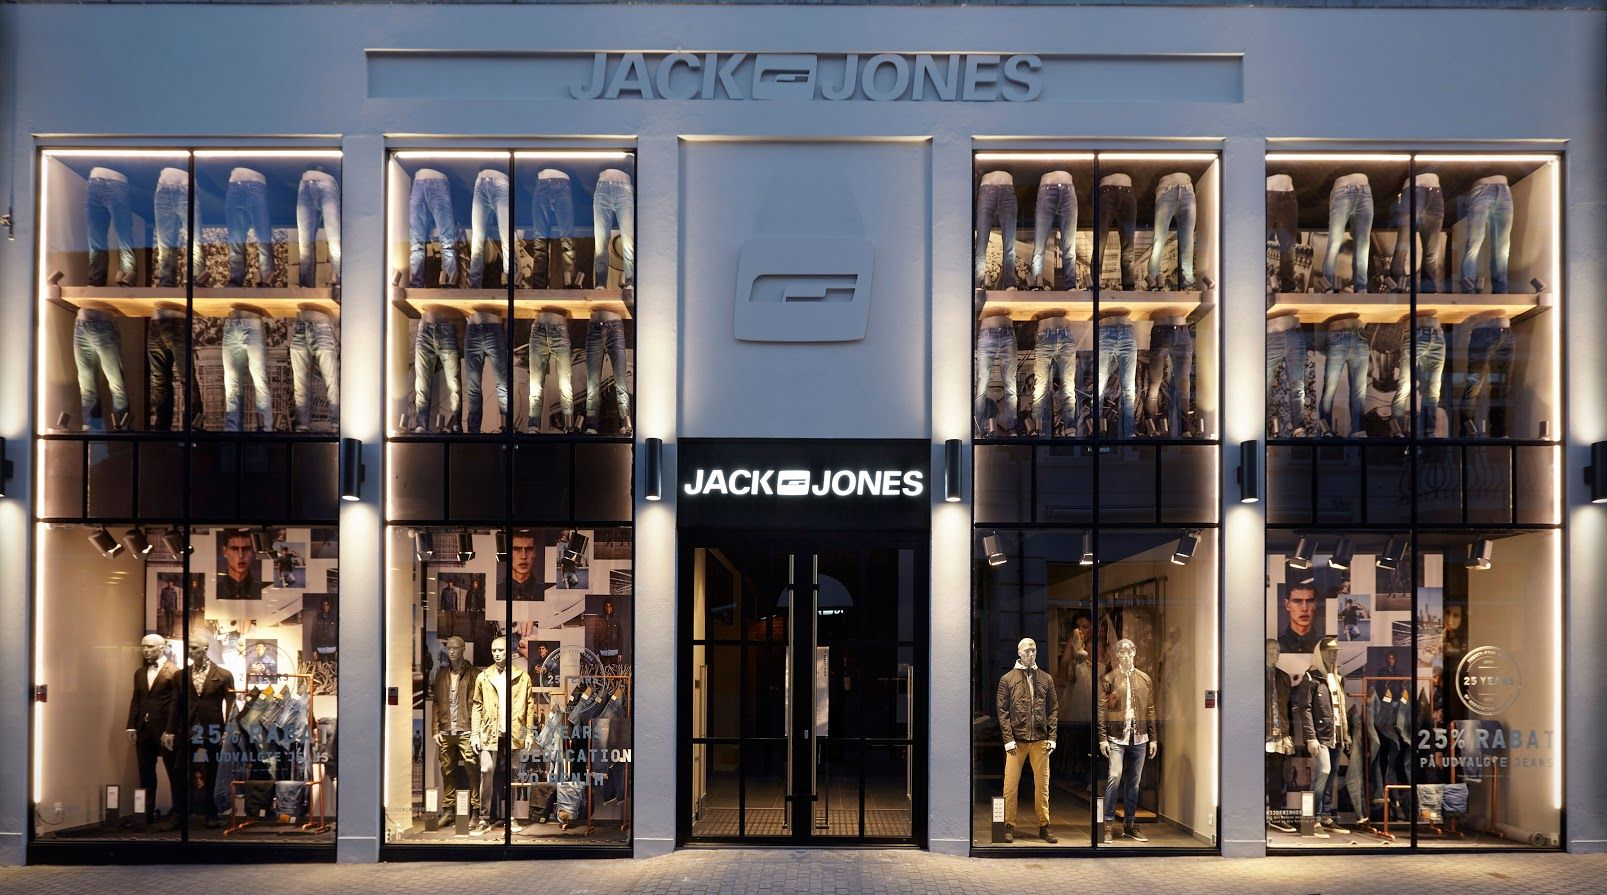 Jack Jones Holstebro Dk Shop Exterior Visual Merchandising Shop Display Window Display Window Display Window Display Design Visual Merchandising